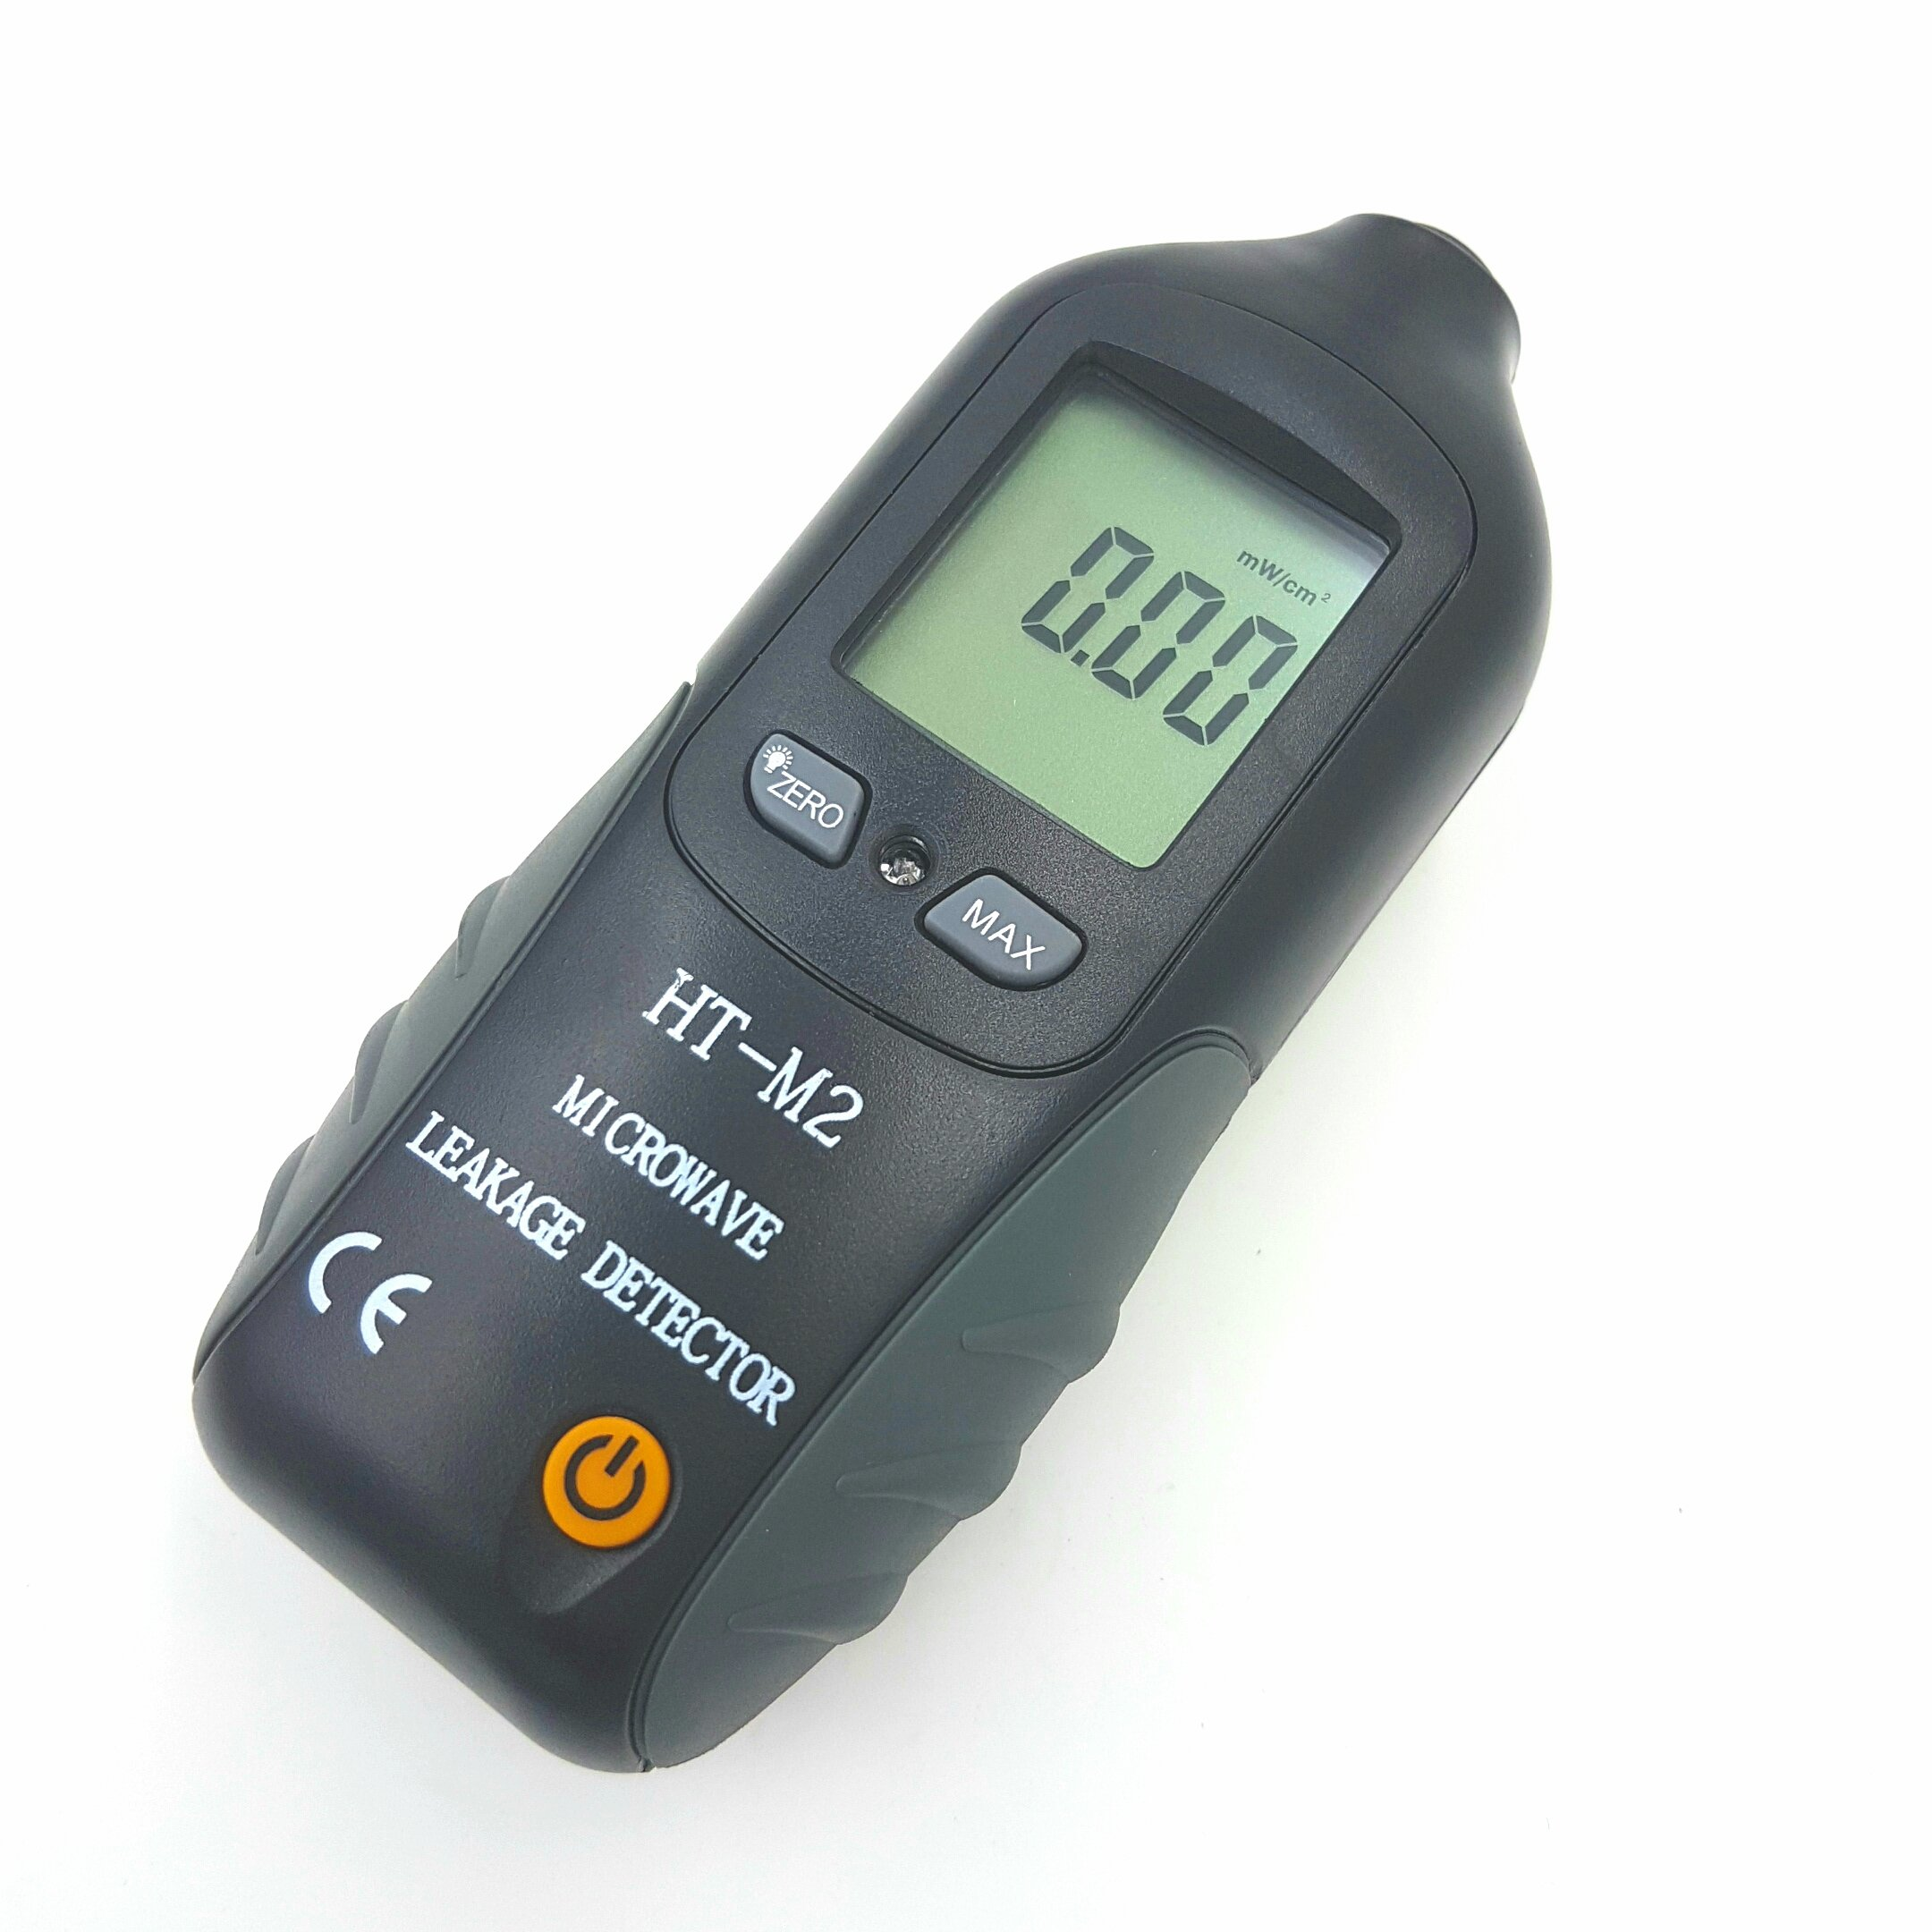 Perfect-Prime MW0002, Digital LCD Microwave Oven Leakage Detector 2450MHz with Backlight No Need Recalibration